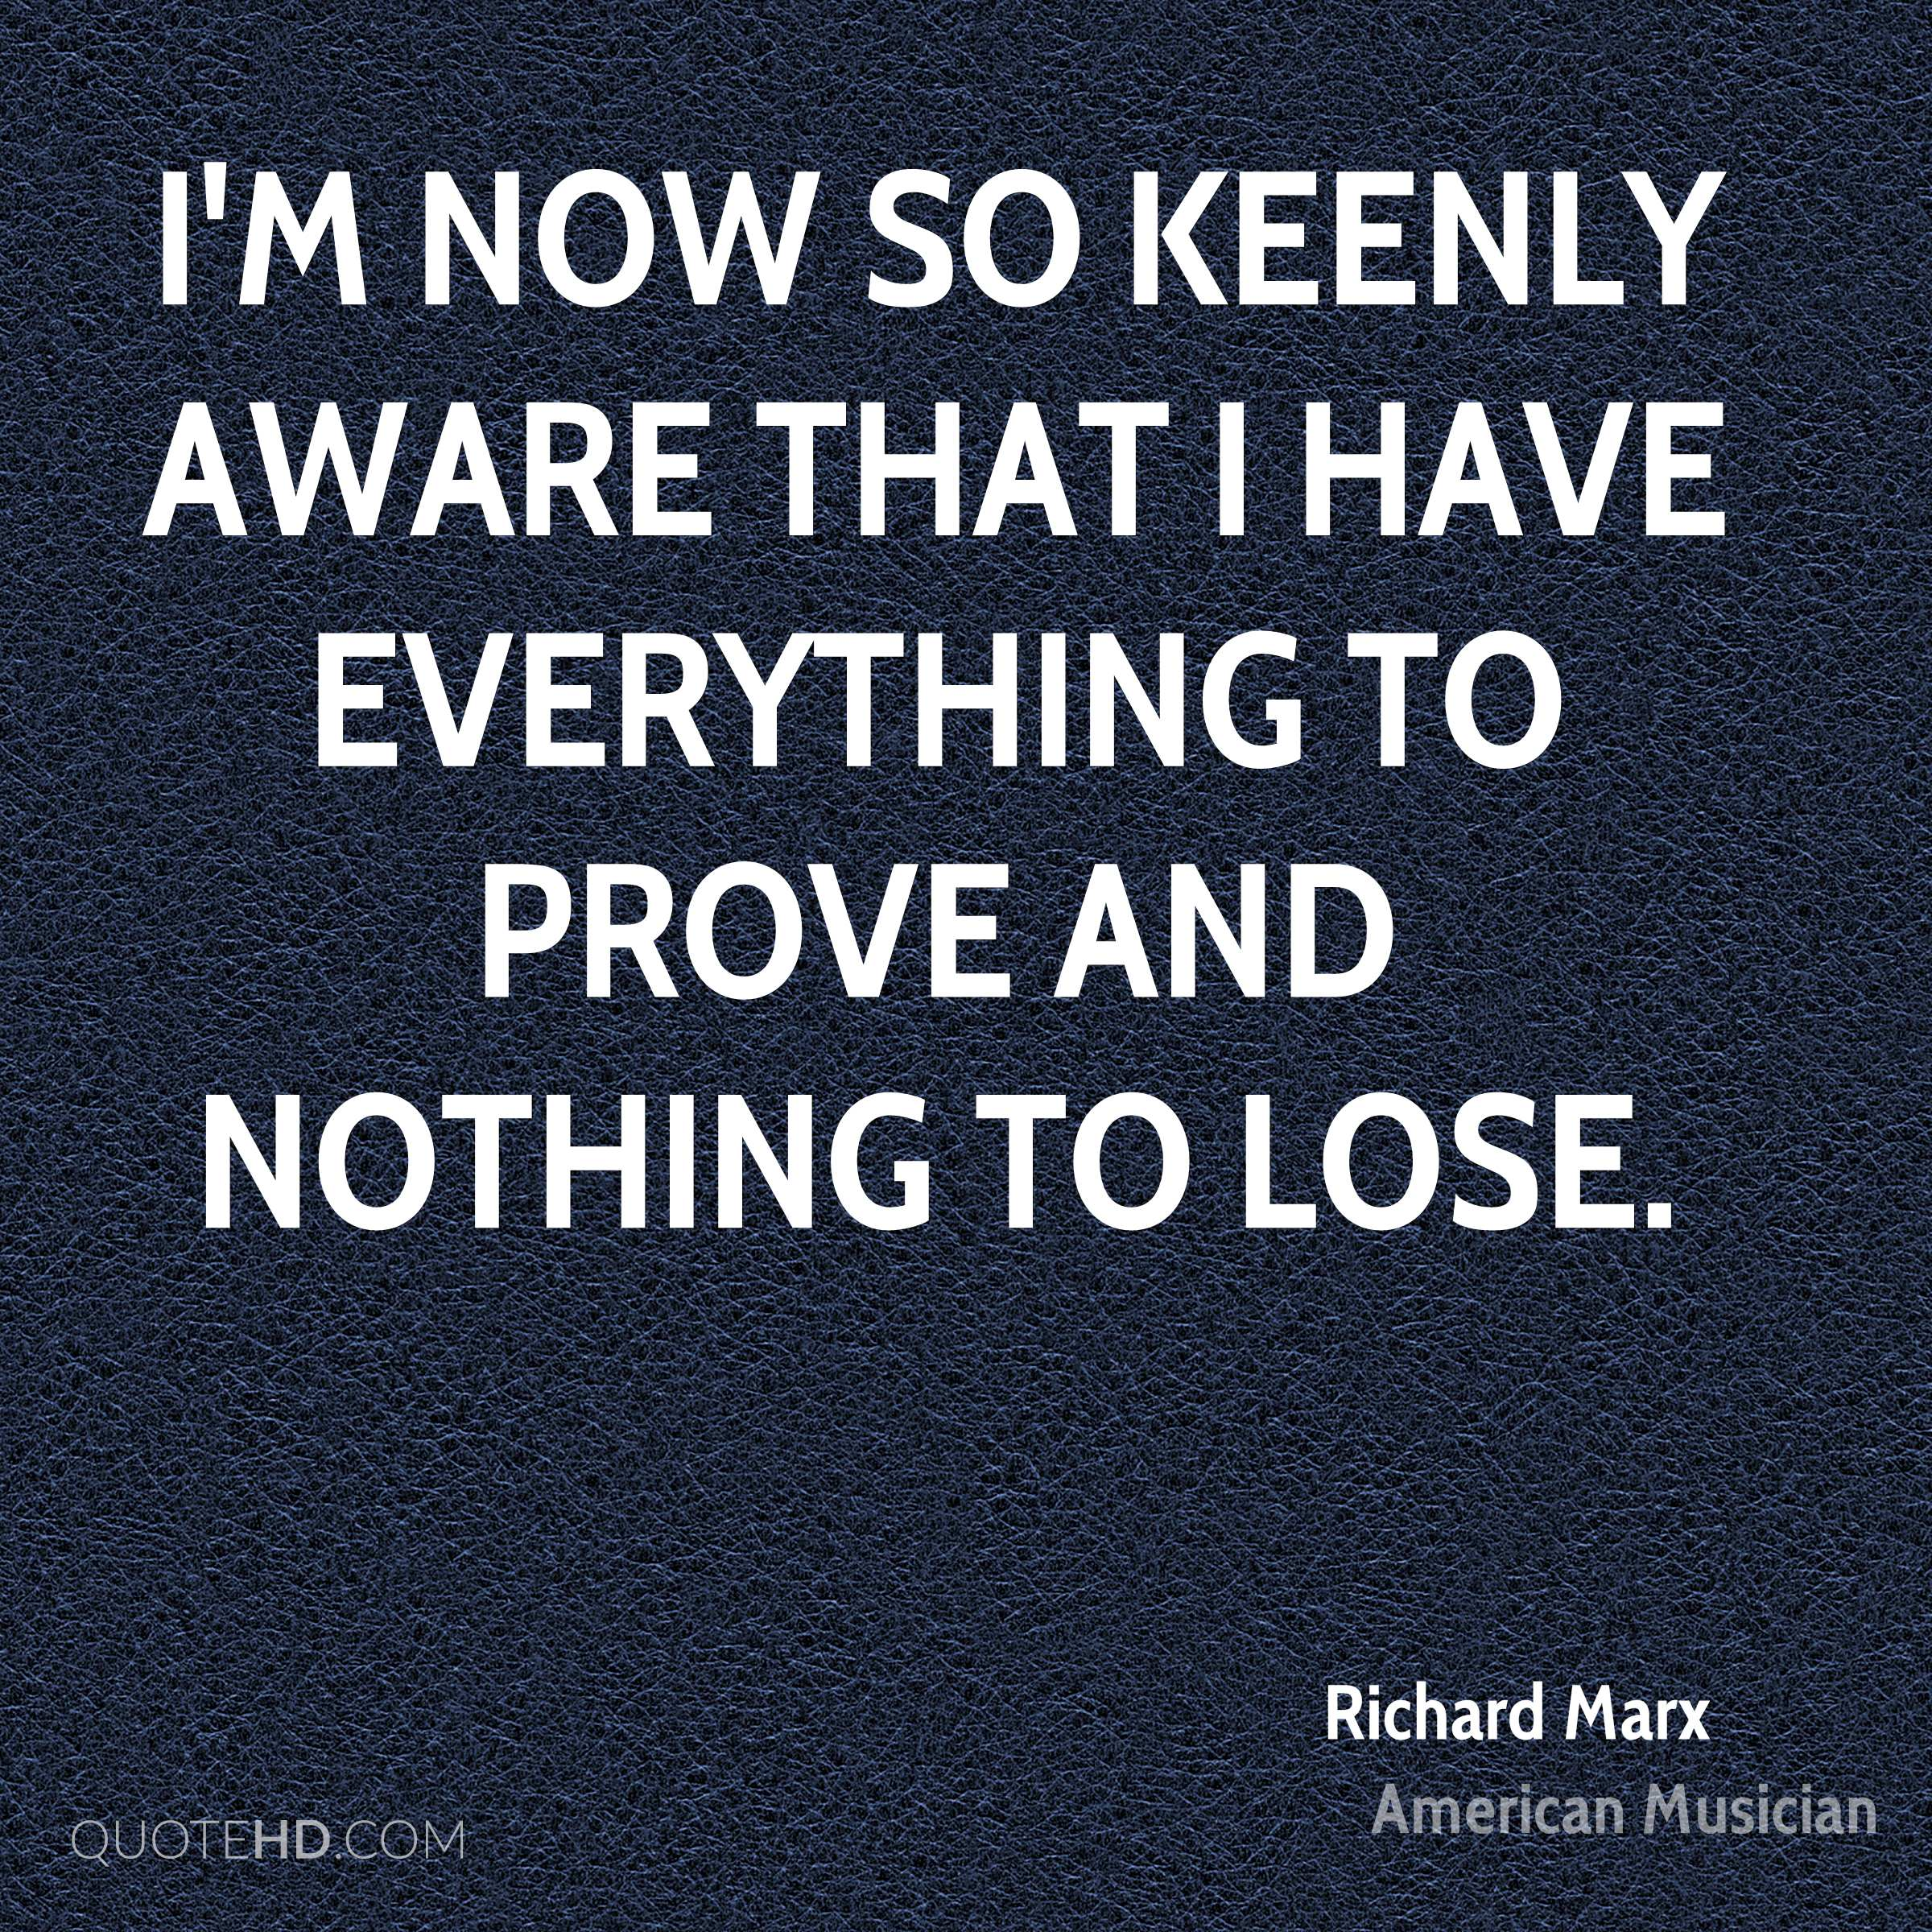 I'm now so keenly aware that I have everything to prove and nothing to lose.